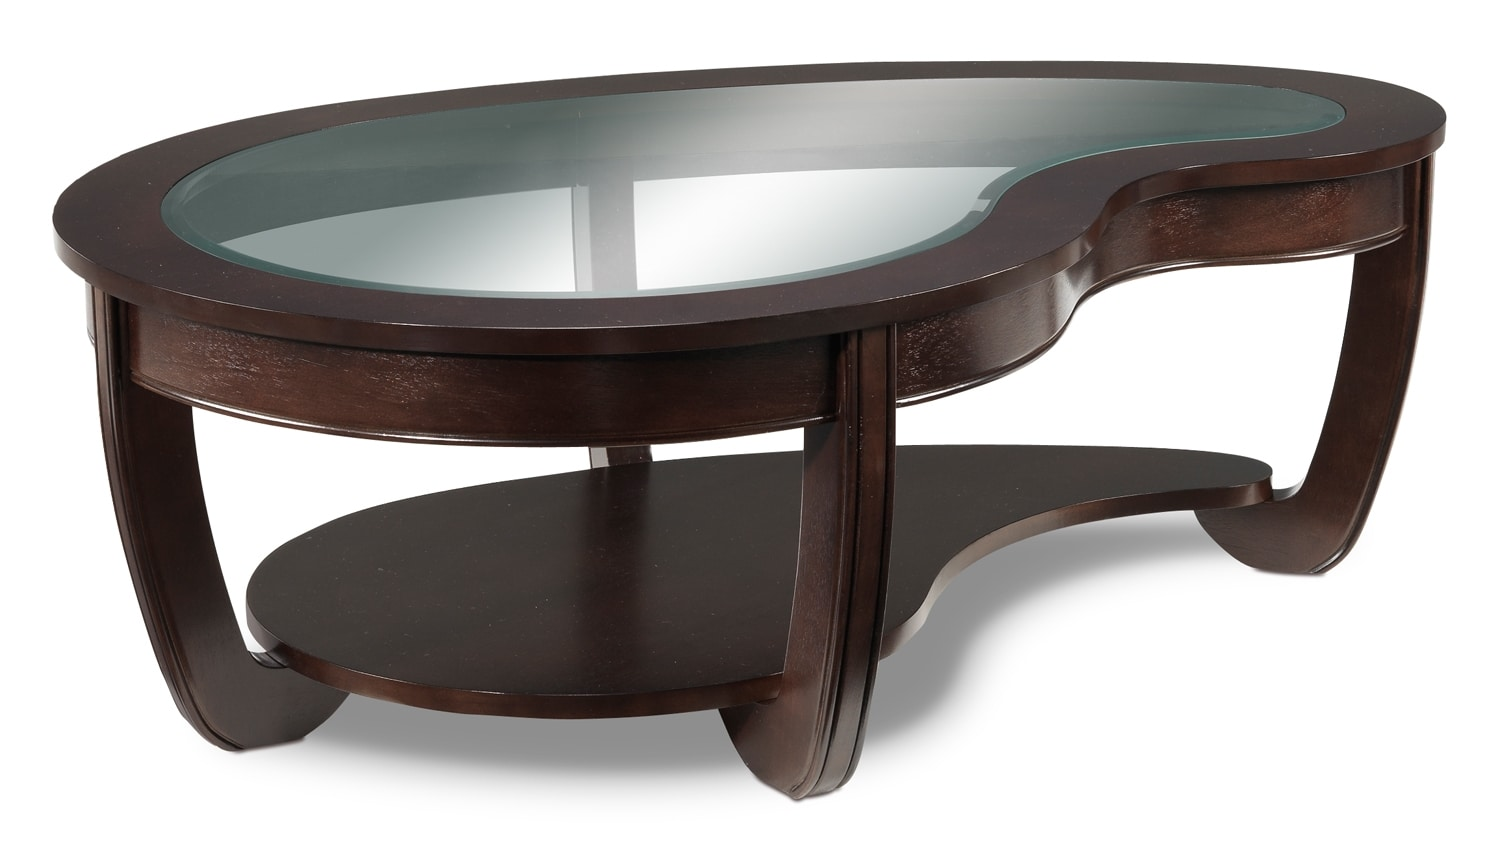 Kitson Coffee Table - Cherry